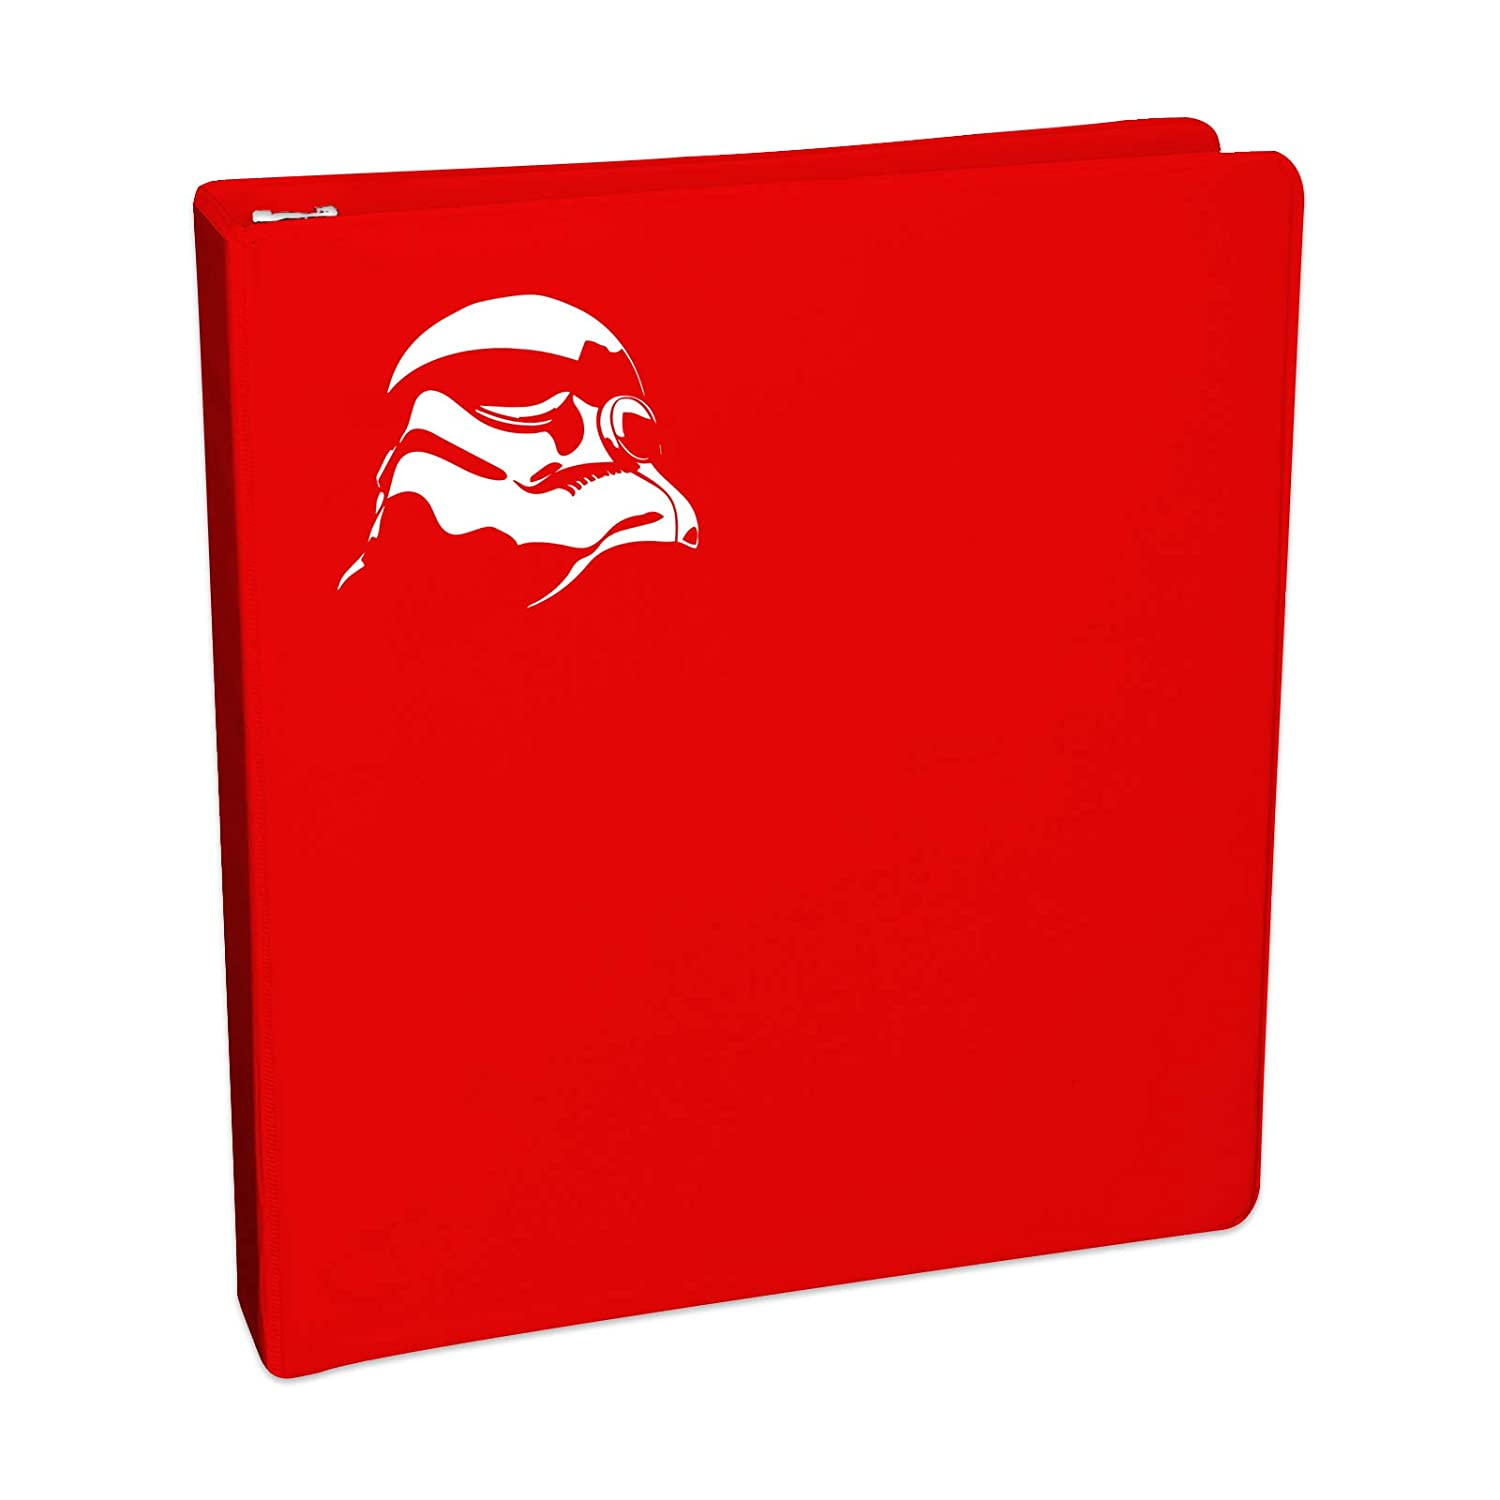 Sticker Decal Notebook Car Laptop 6 Bargain Max Decals White Stormtrooper SW Parody